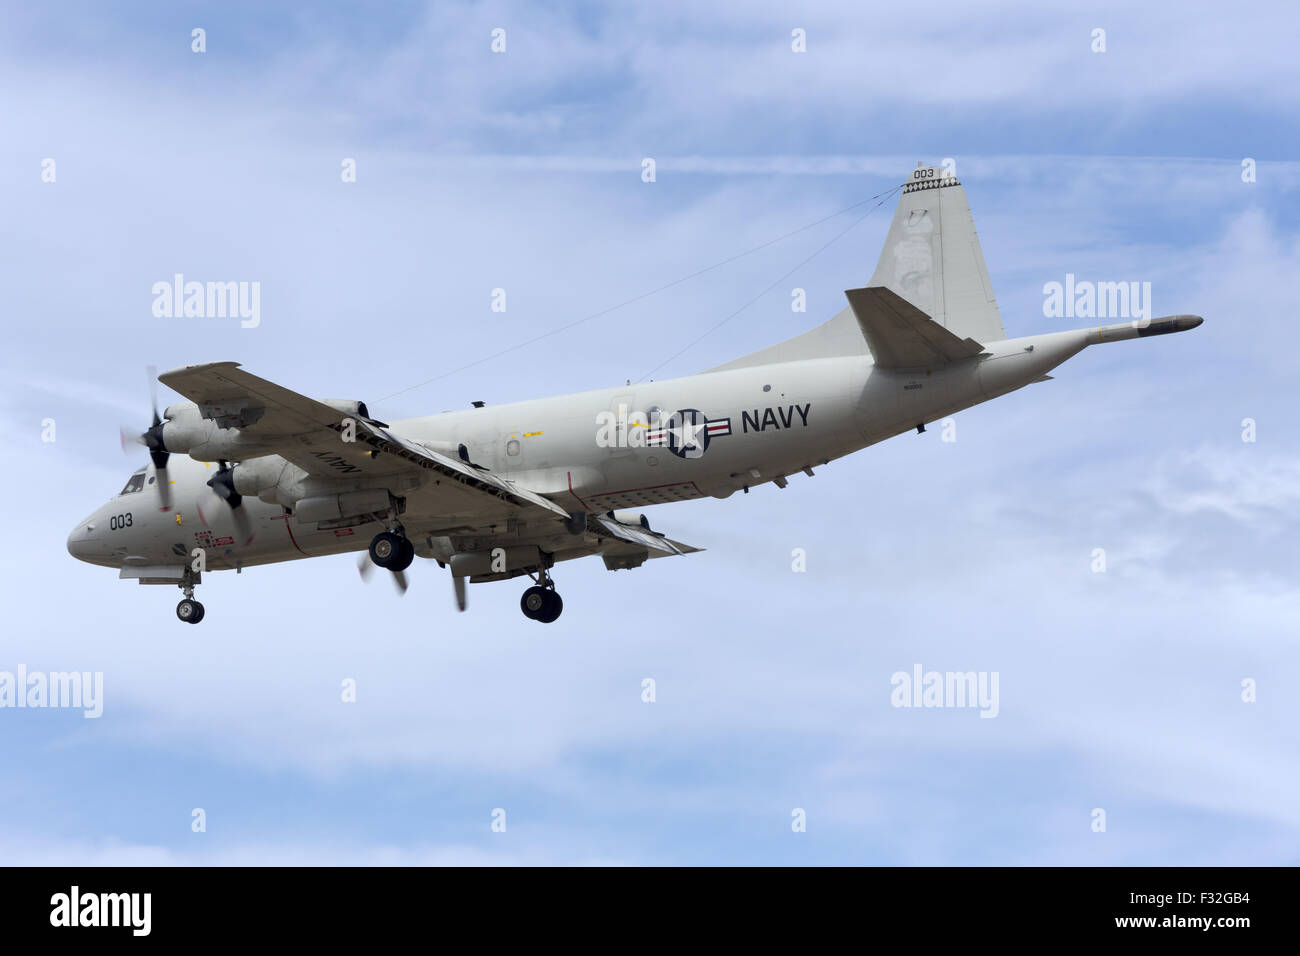 United States Navy Lockheed P-3C Orion landing for the airshow. Stock Photo